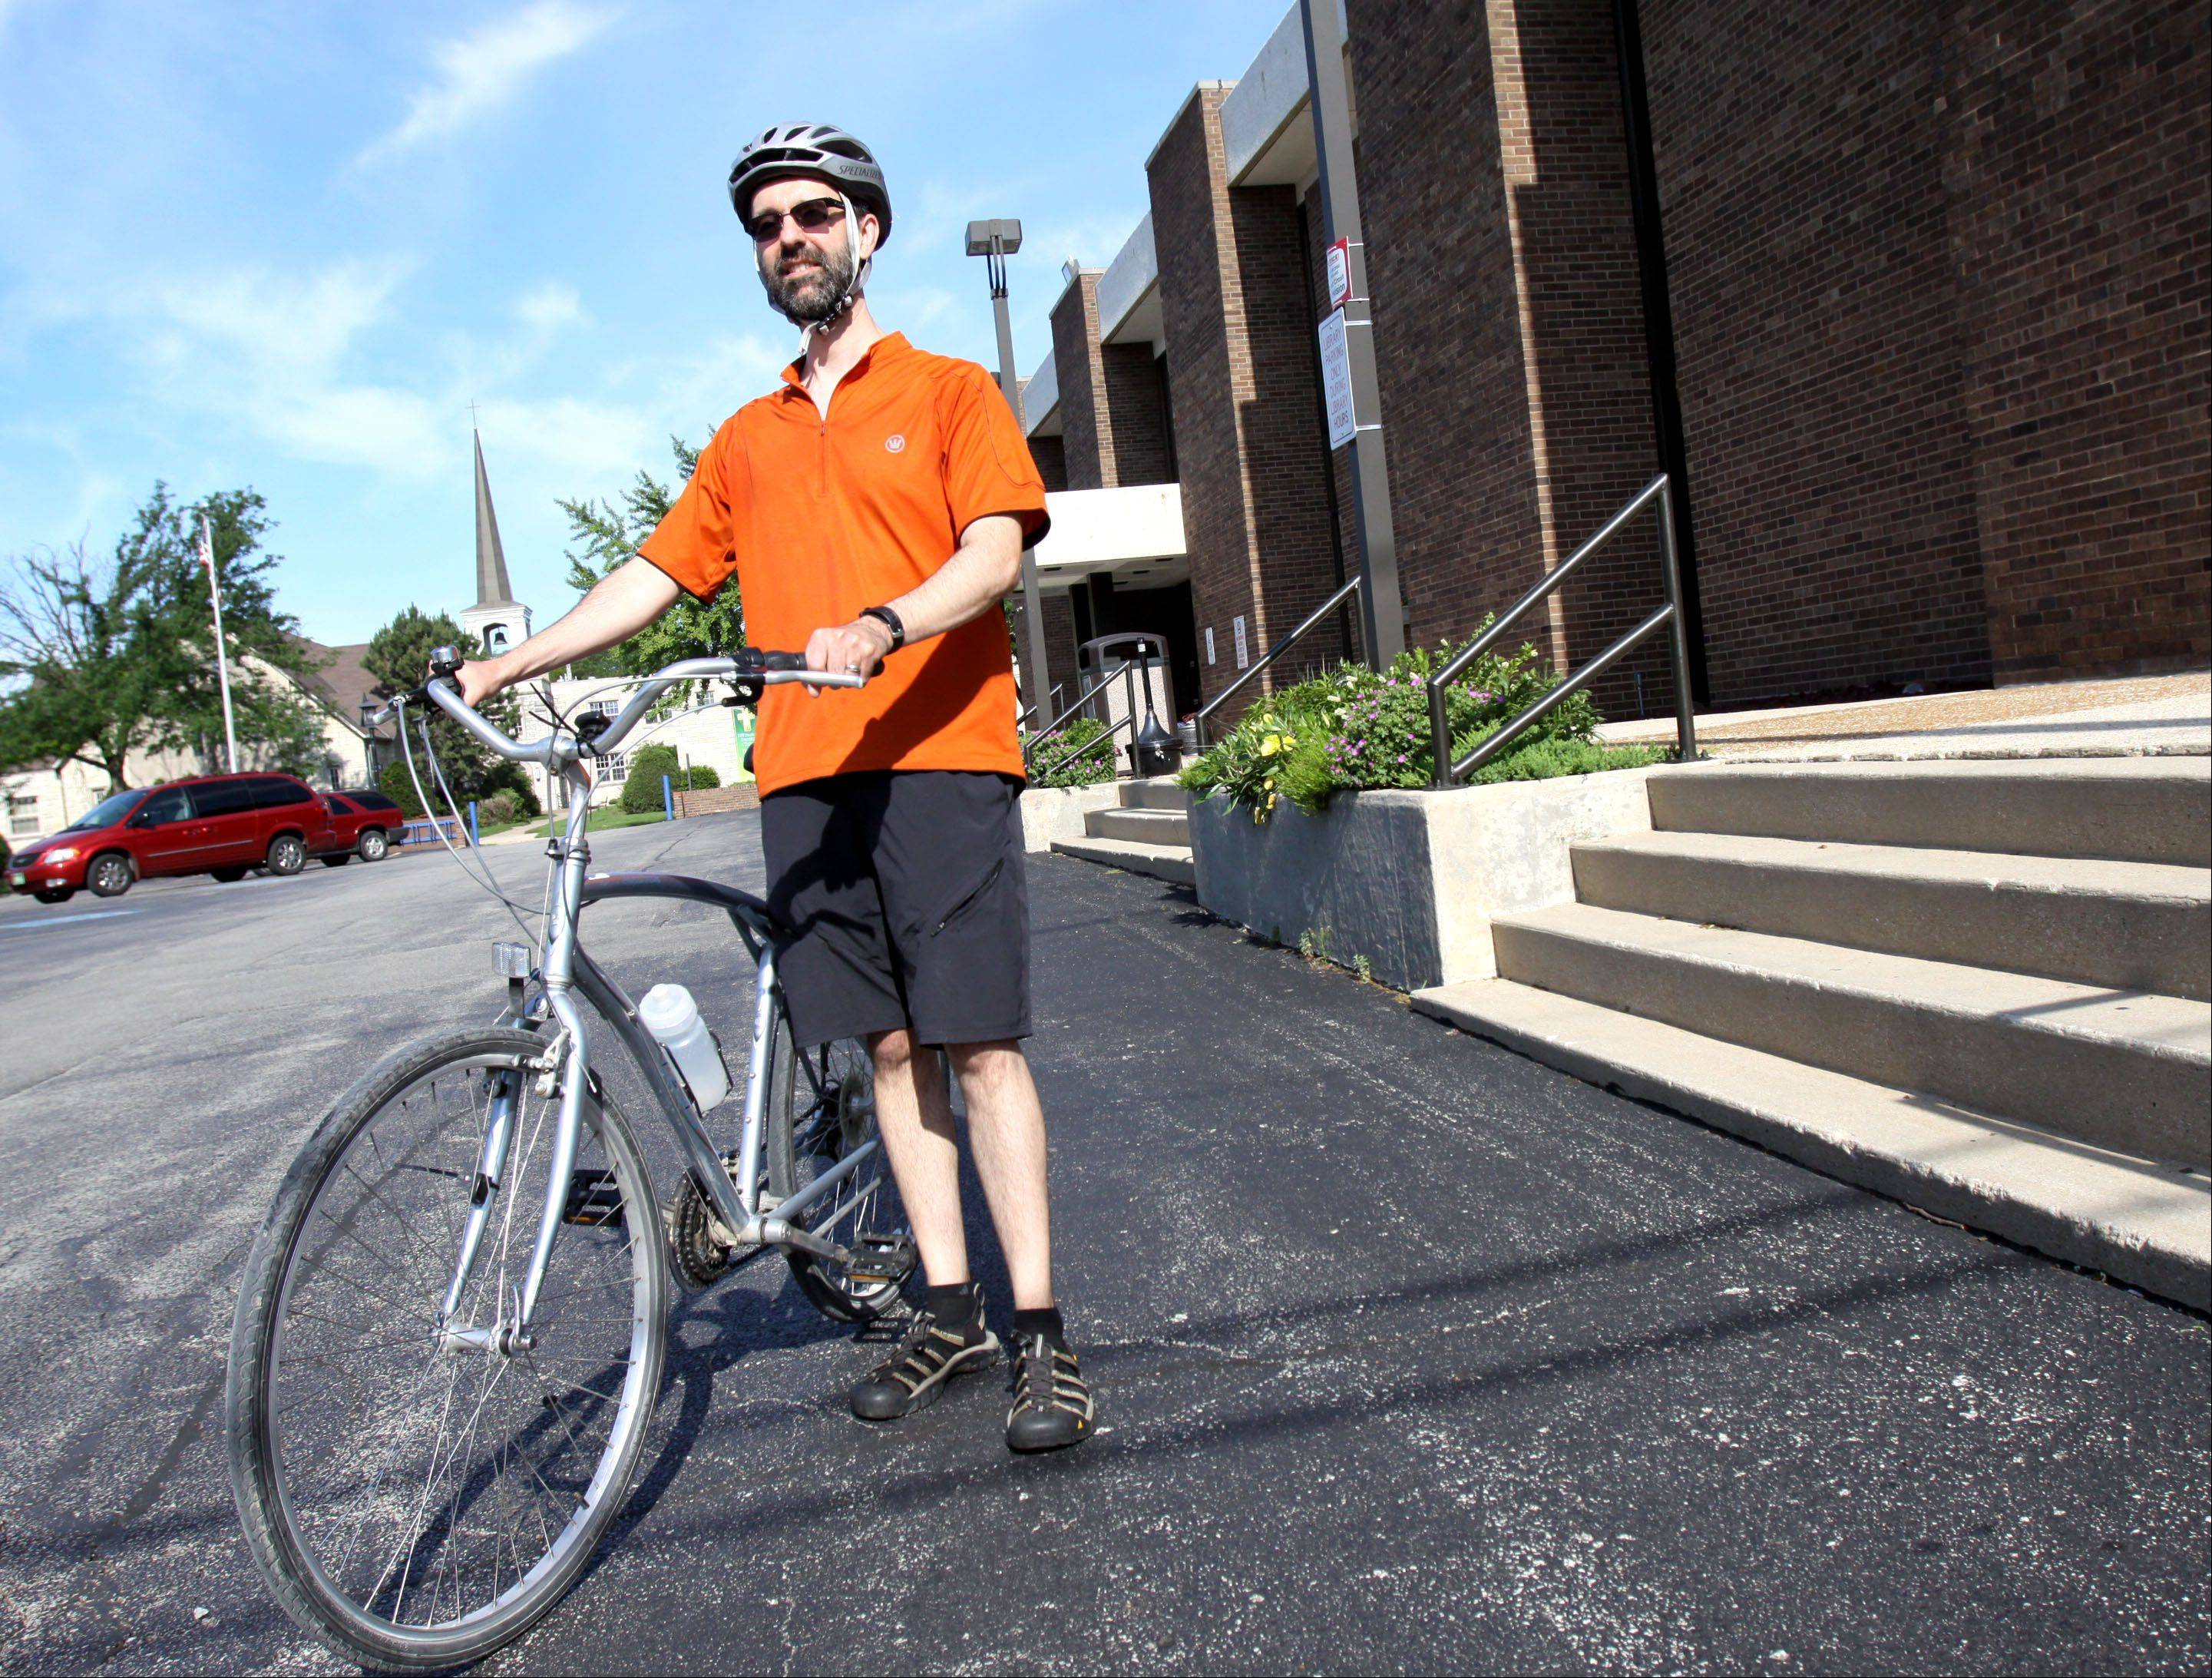 Villa Park librarian Sean Birmingham often bikes to work from Westmont using the Prairie Path to avoid busy streets.